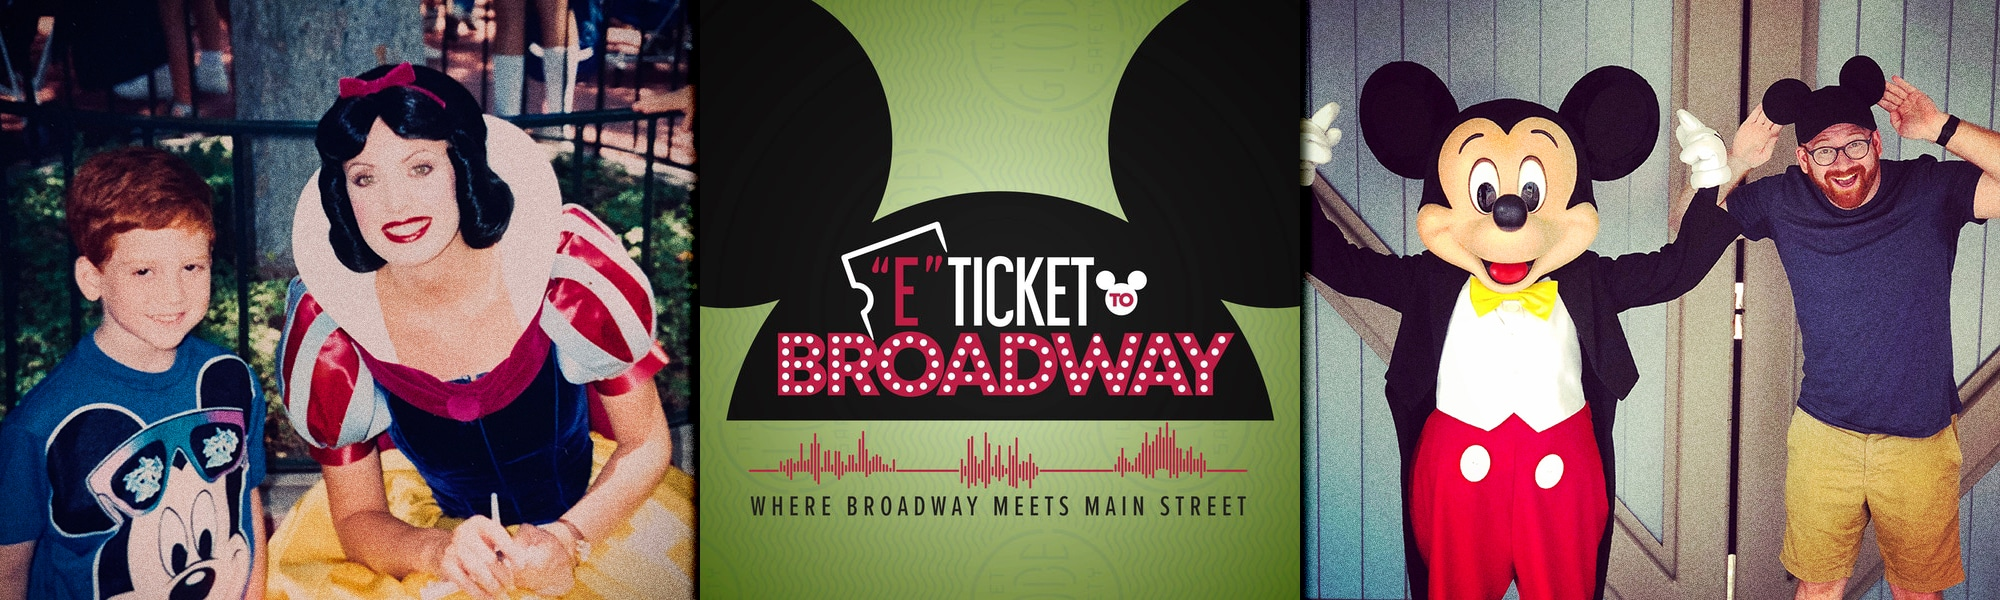 E-Ticket to Broadway - banner